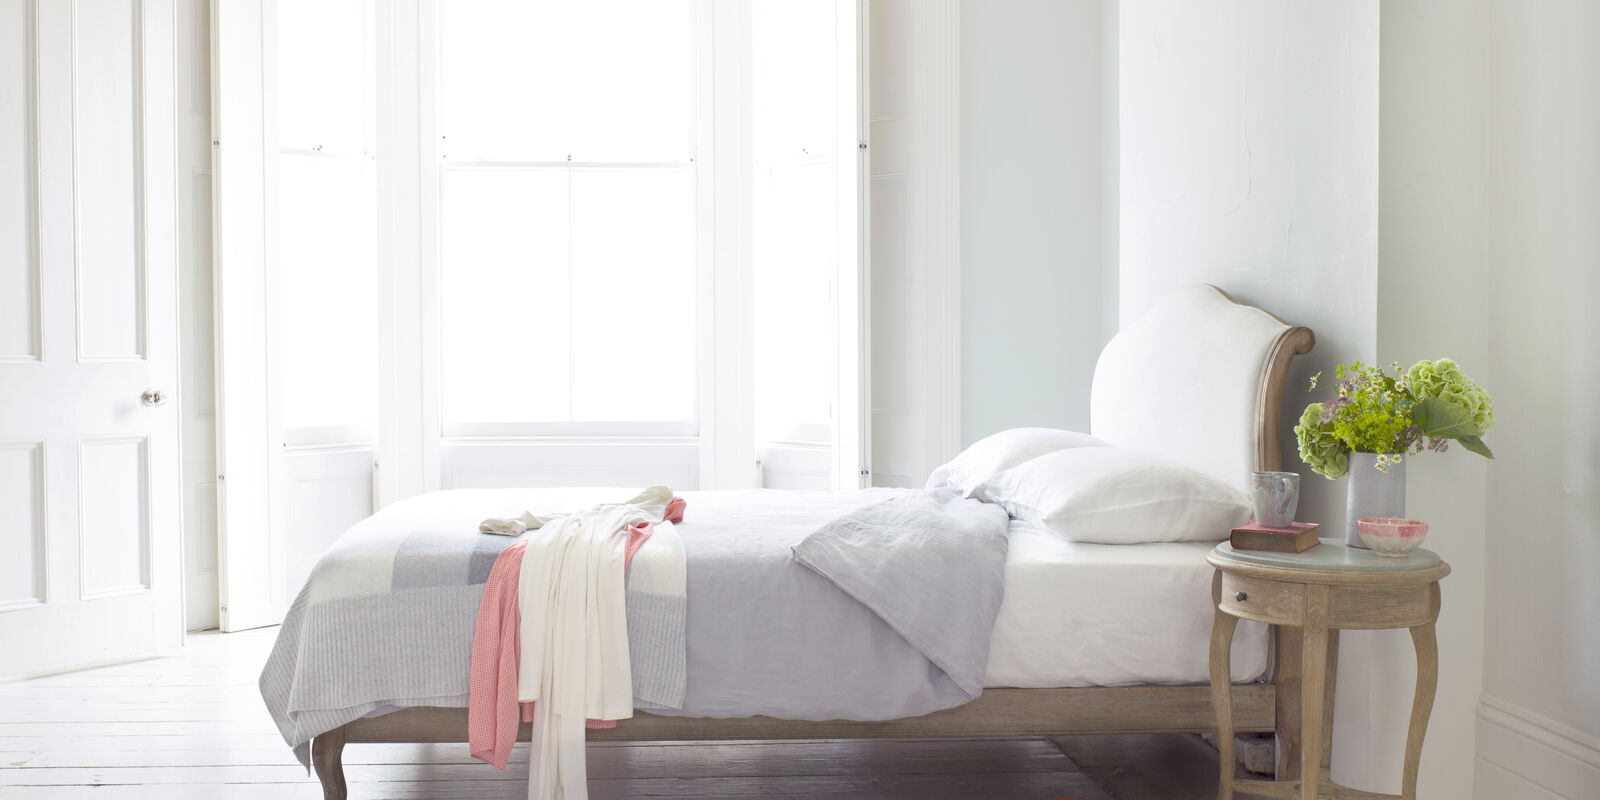 Coco - double French bed handmade from weathered oak